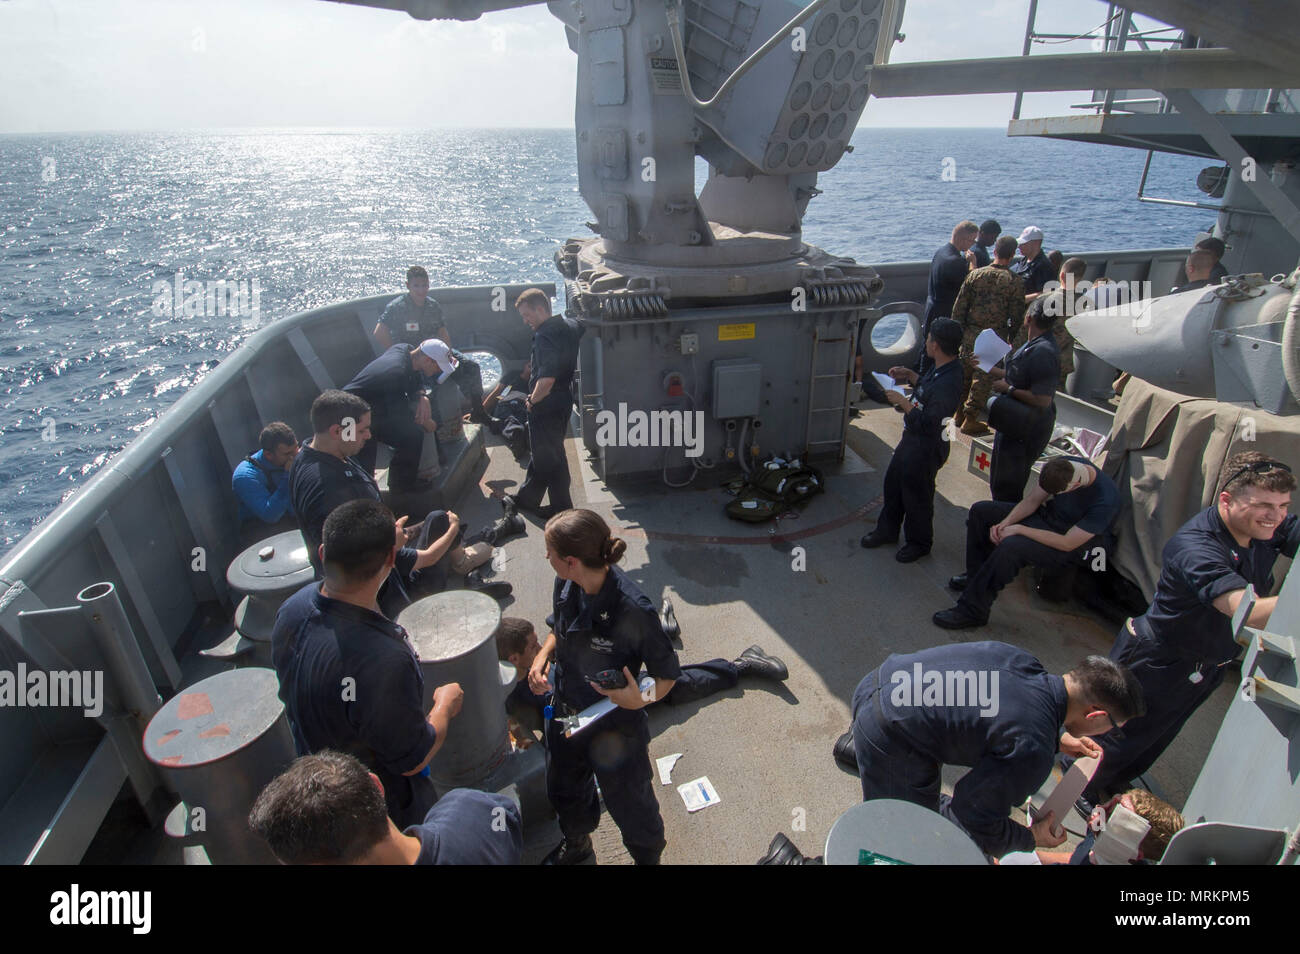 170621-N-DL434-069 SOLOMON SEA (June 21, 2017) Bonhomme Richard flagship of the Bonhomme Richard Expeditionary Strike Group, is operating in the Indo-Asia-Pacific region to enhance partnerships and be a ready-response force for any type of contingency. (U.S. Navy photo by Mass Communications Specialist Seaman Apprentice Gavin Shields/Released) Stock Photo